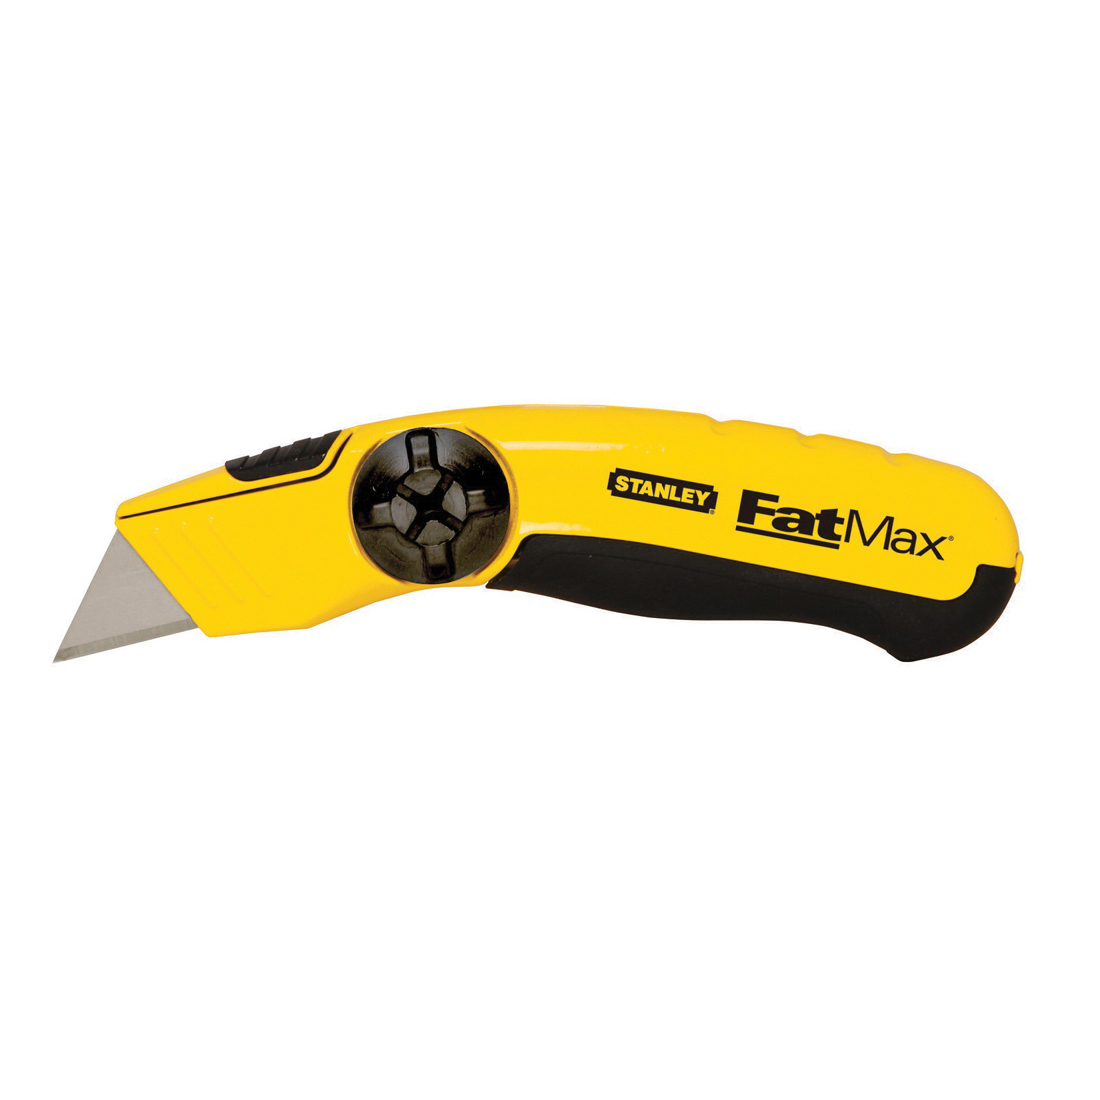 Stanley® FatMax® 10-780 Utility Knife, Fixed Blade, 3 Blades Included, Steel Blade, 6-1/4 in OAL